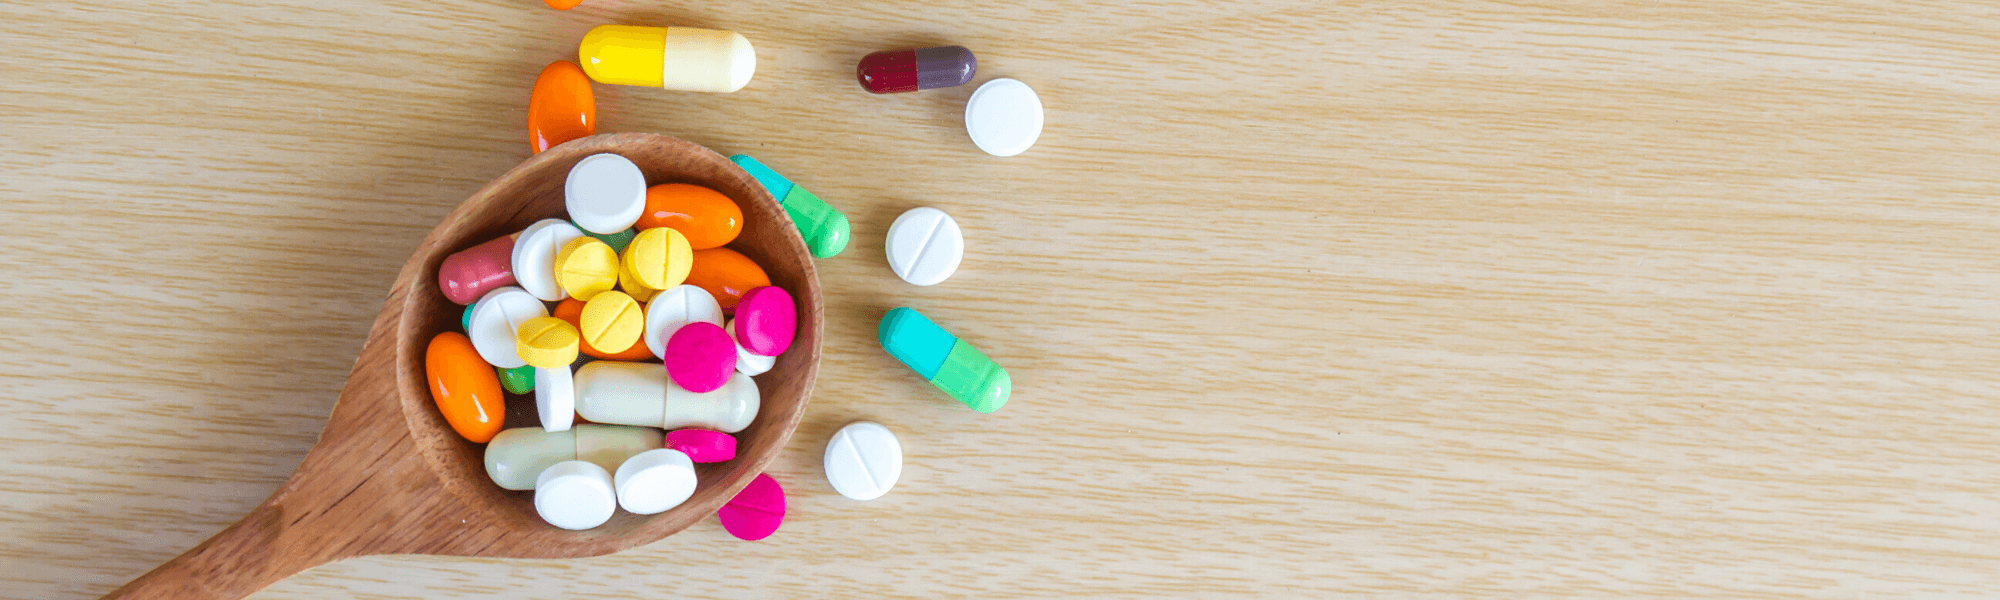 3 ESSENTIAL SUPPLEMENTS YOU NEED TO TAKE DAILY (PLUS 2 EXTRA OPTIONS FOR A HEALTH BOOST!)